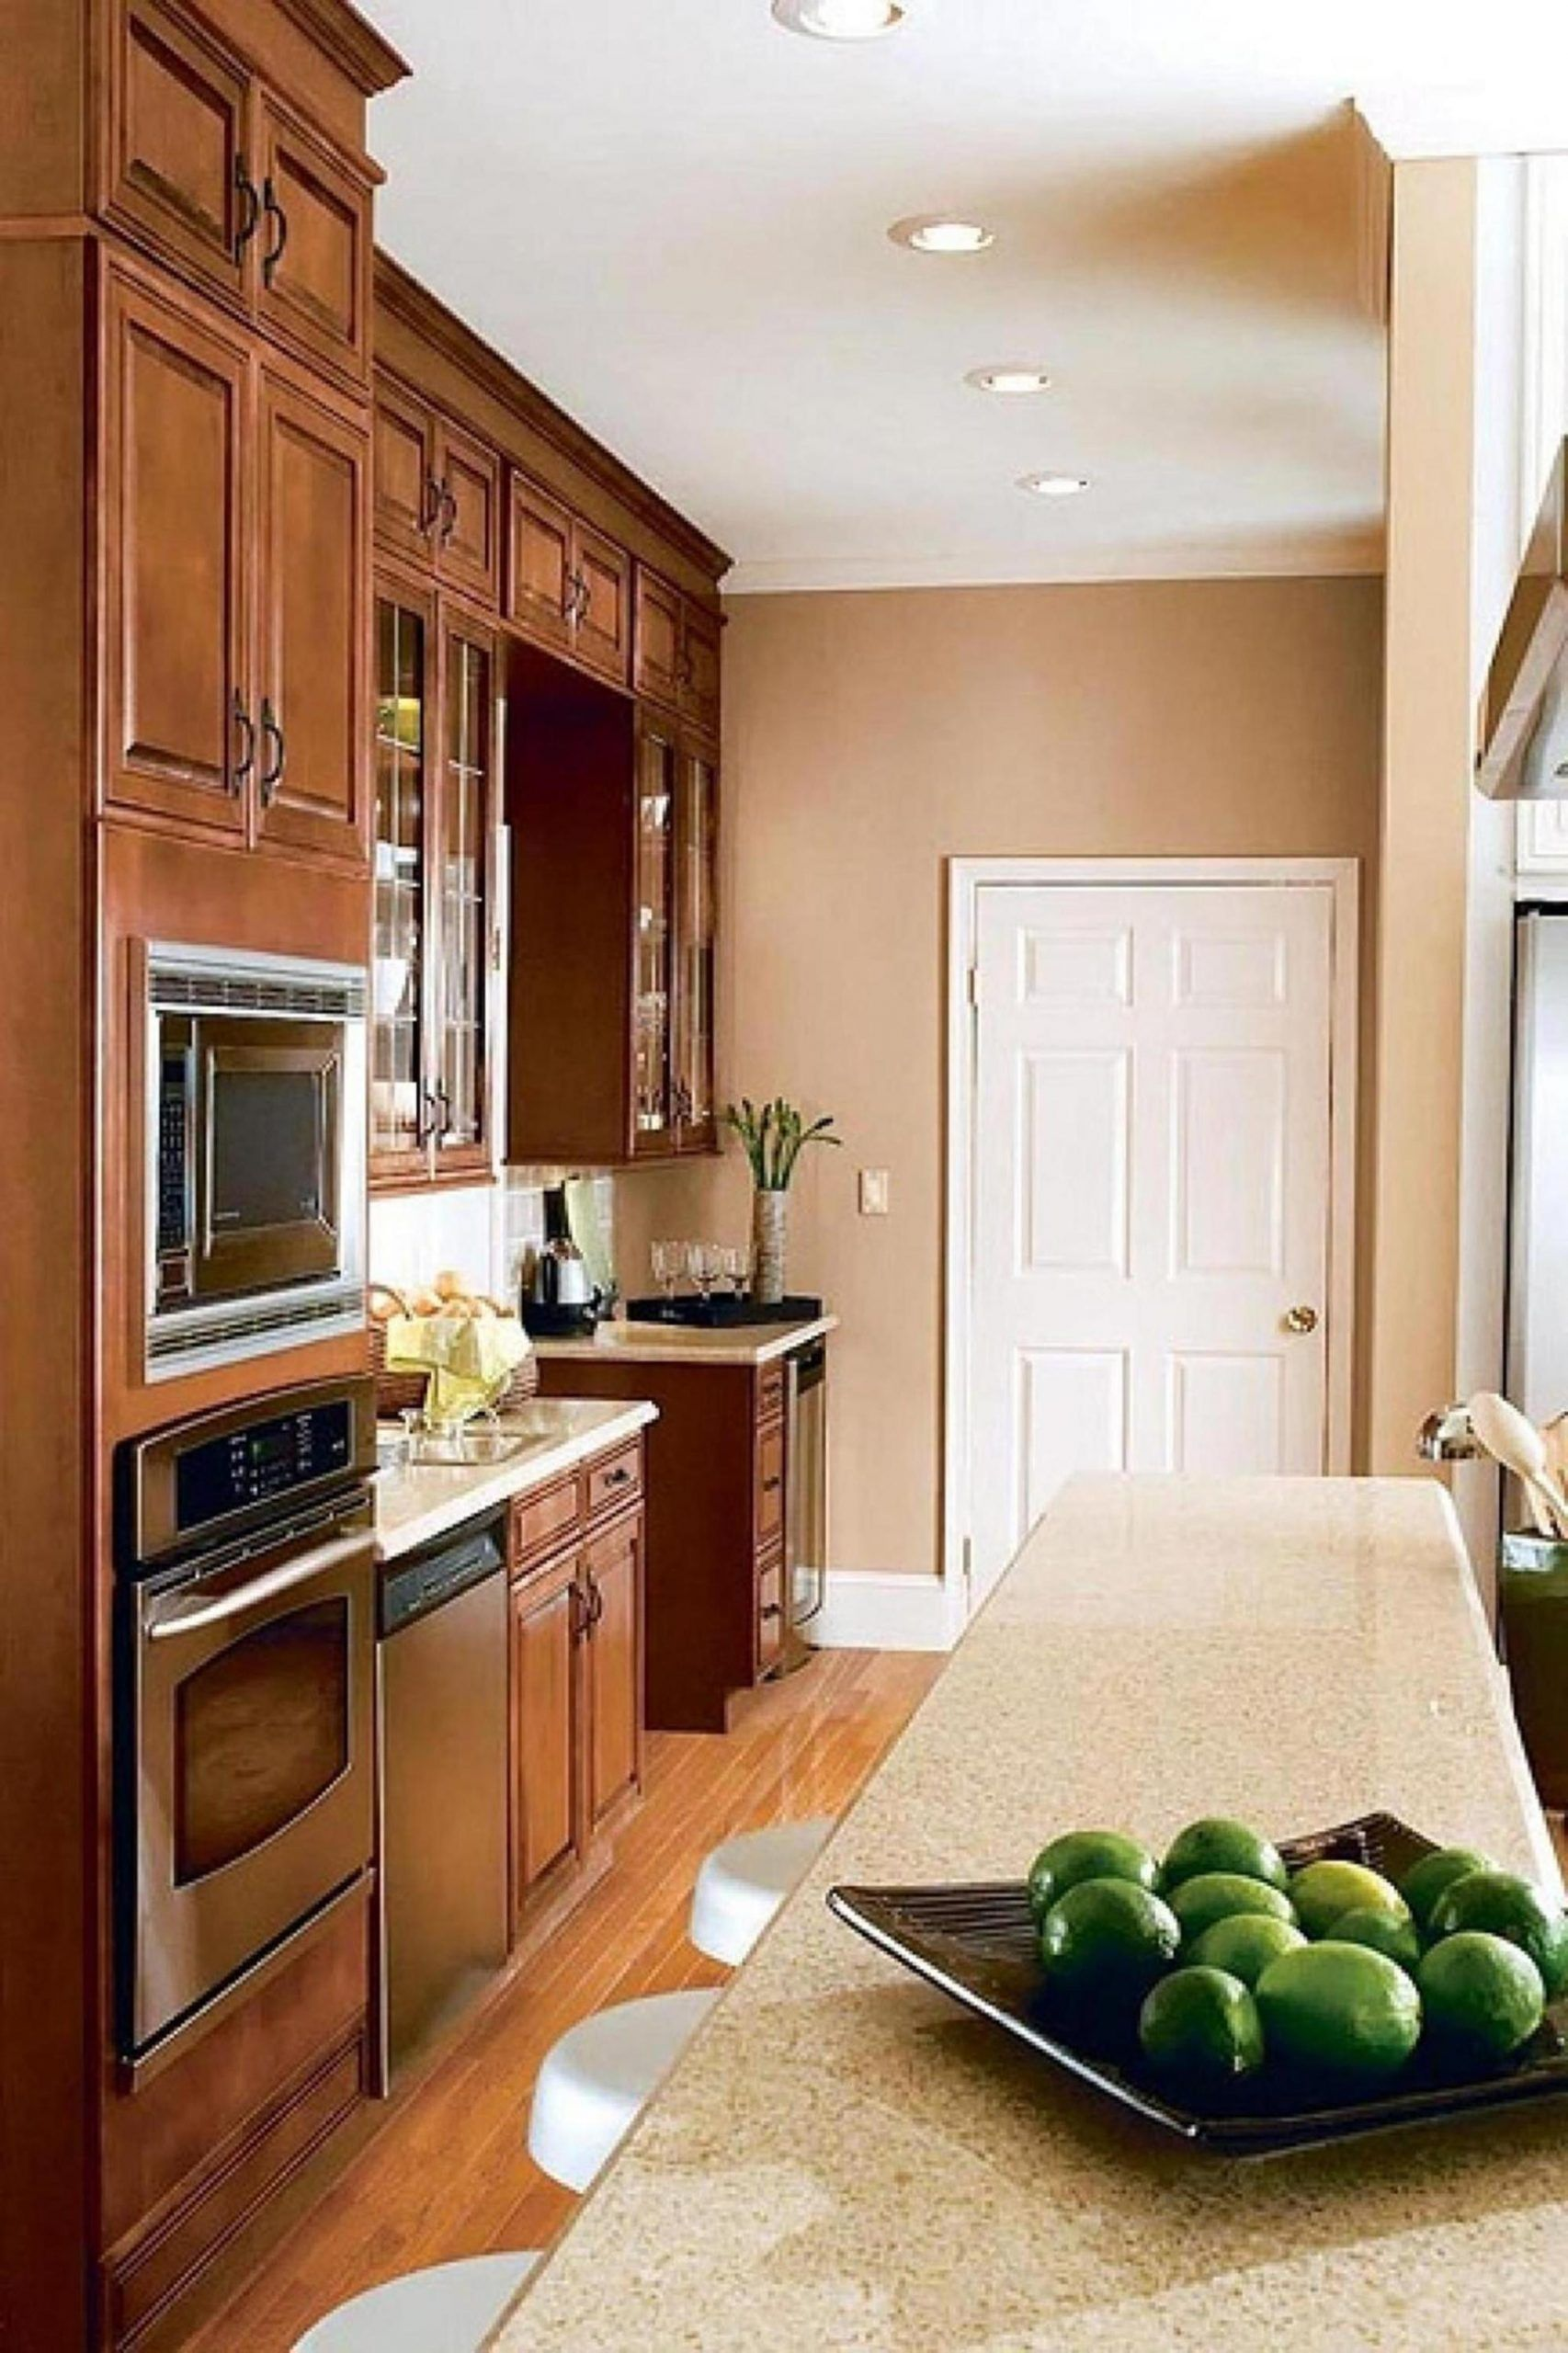 Yellow Kitchen Wall With Oak Cabinet Elegant 20 Perfect Kitchen Wall Colors With Oa In 2020 Kitchen Wall Colors Oak Kitchen Cabinets Wall Color Paint For Kitchen Walls